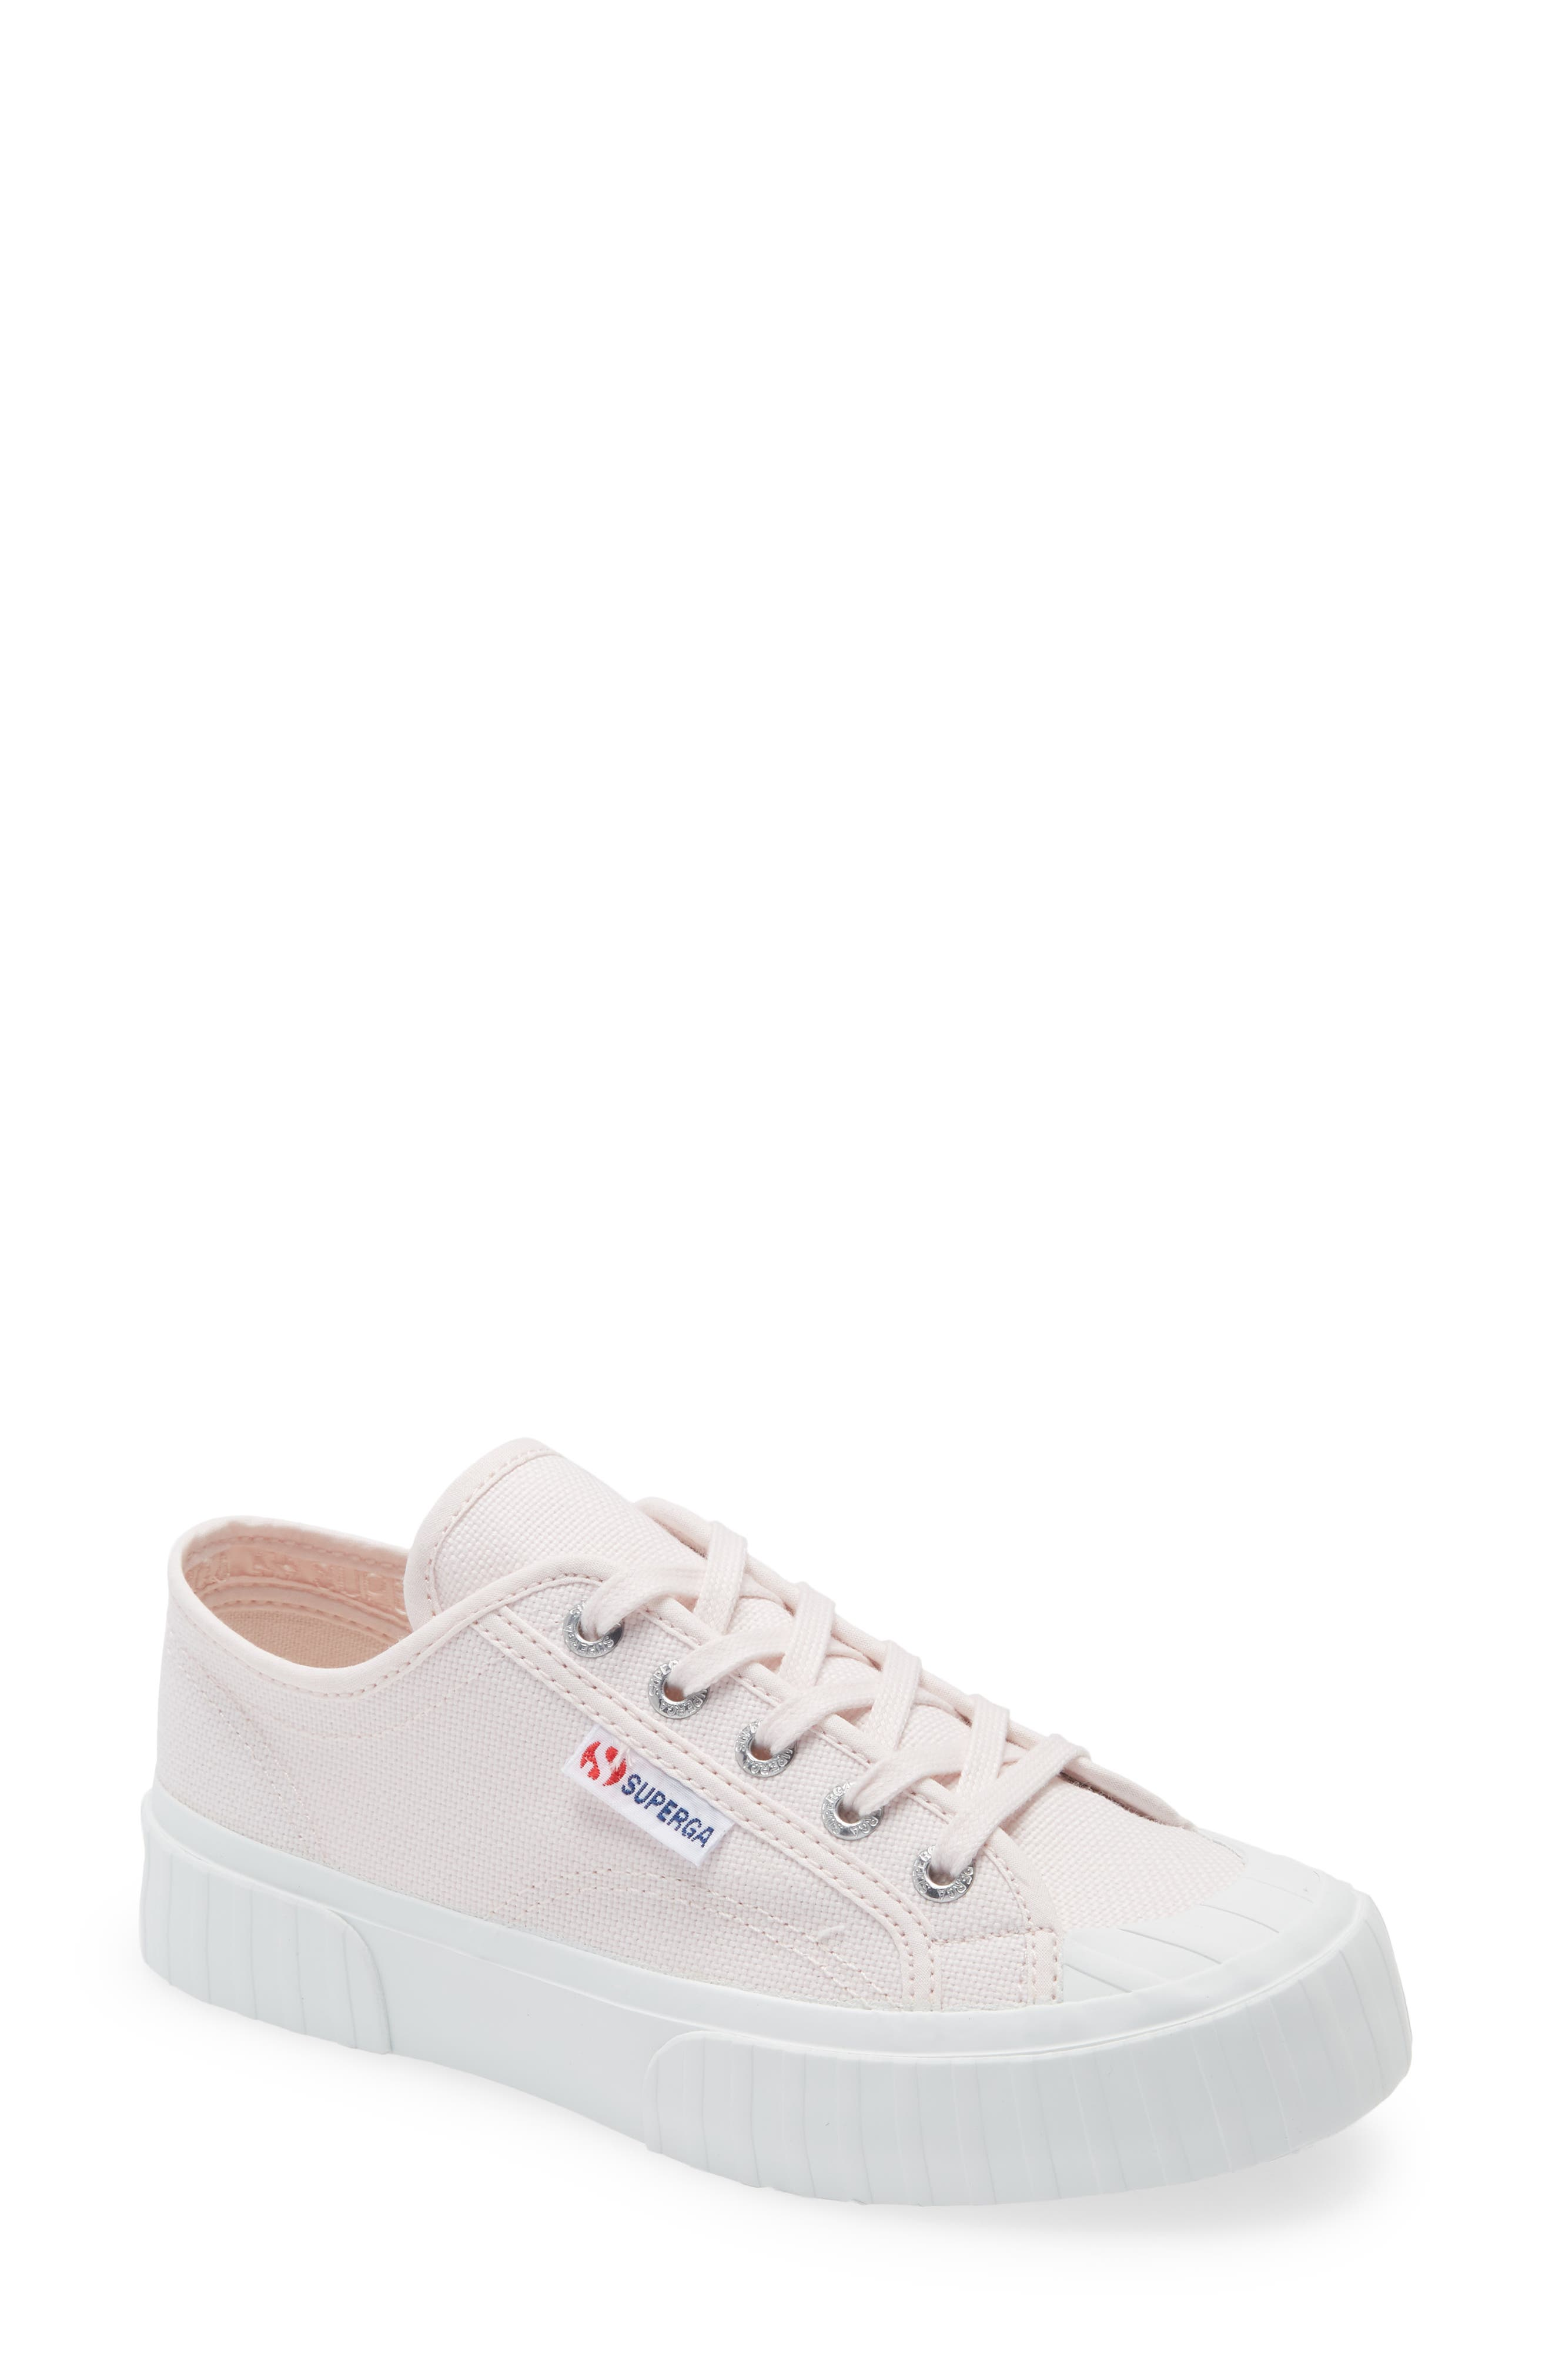 Superga 2790 Actow Line Platform Womens Trainers In Yellow Size Size UK 3-8